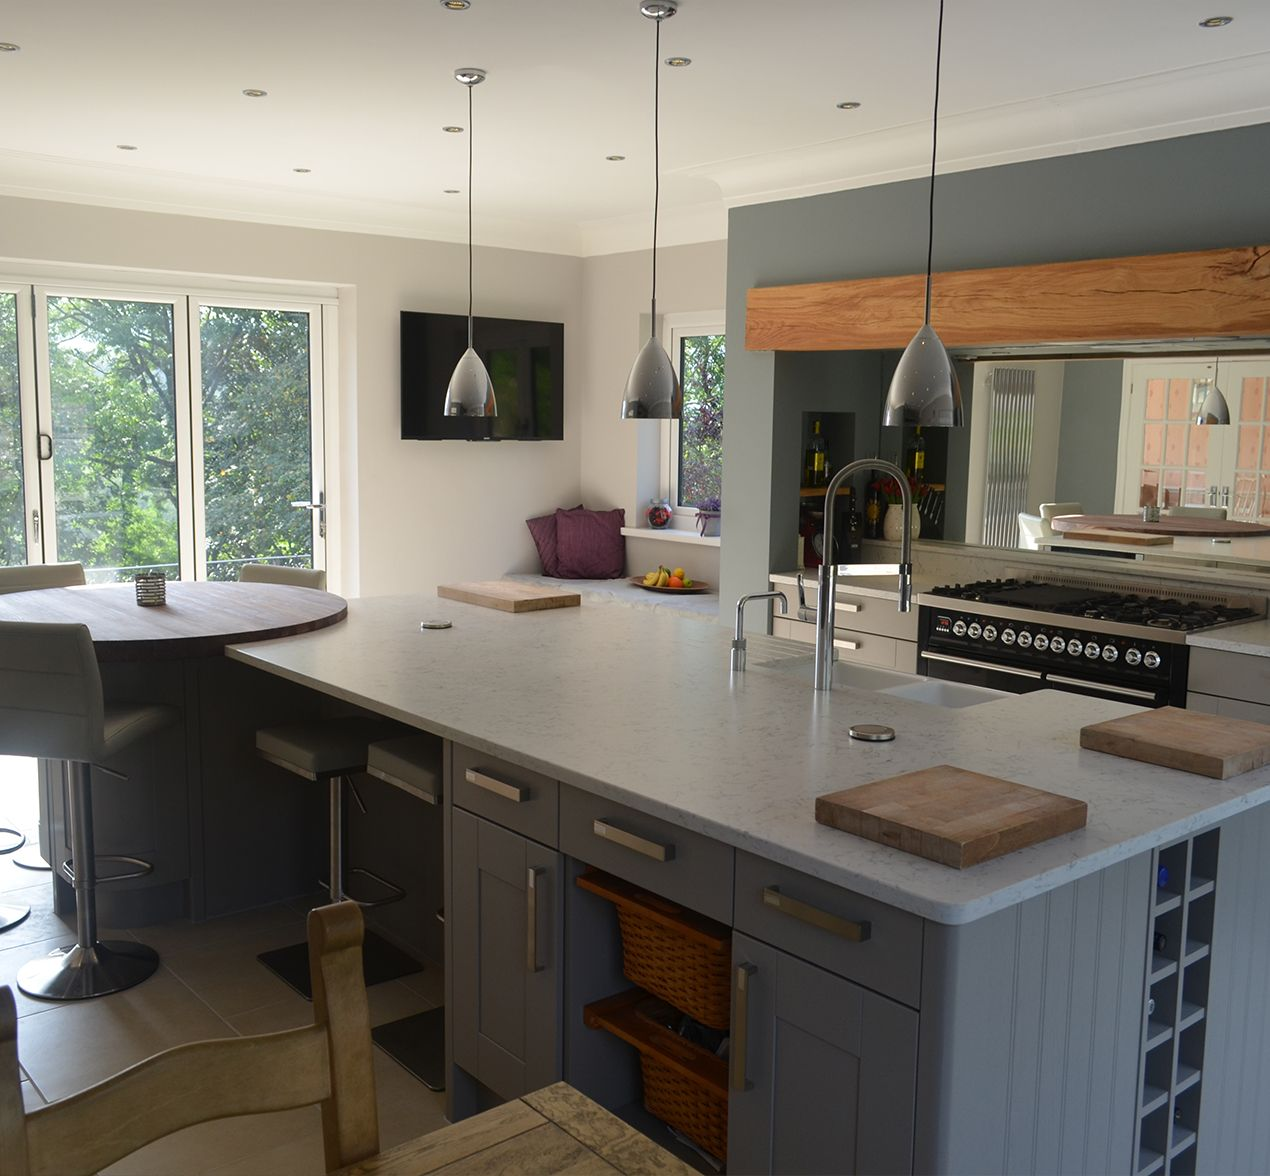 Designer Kitchen For A New Build Home